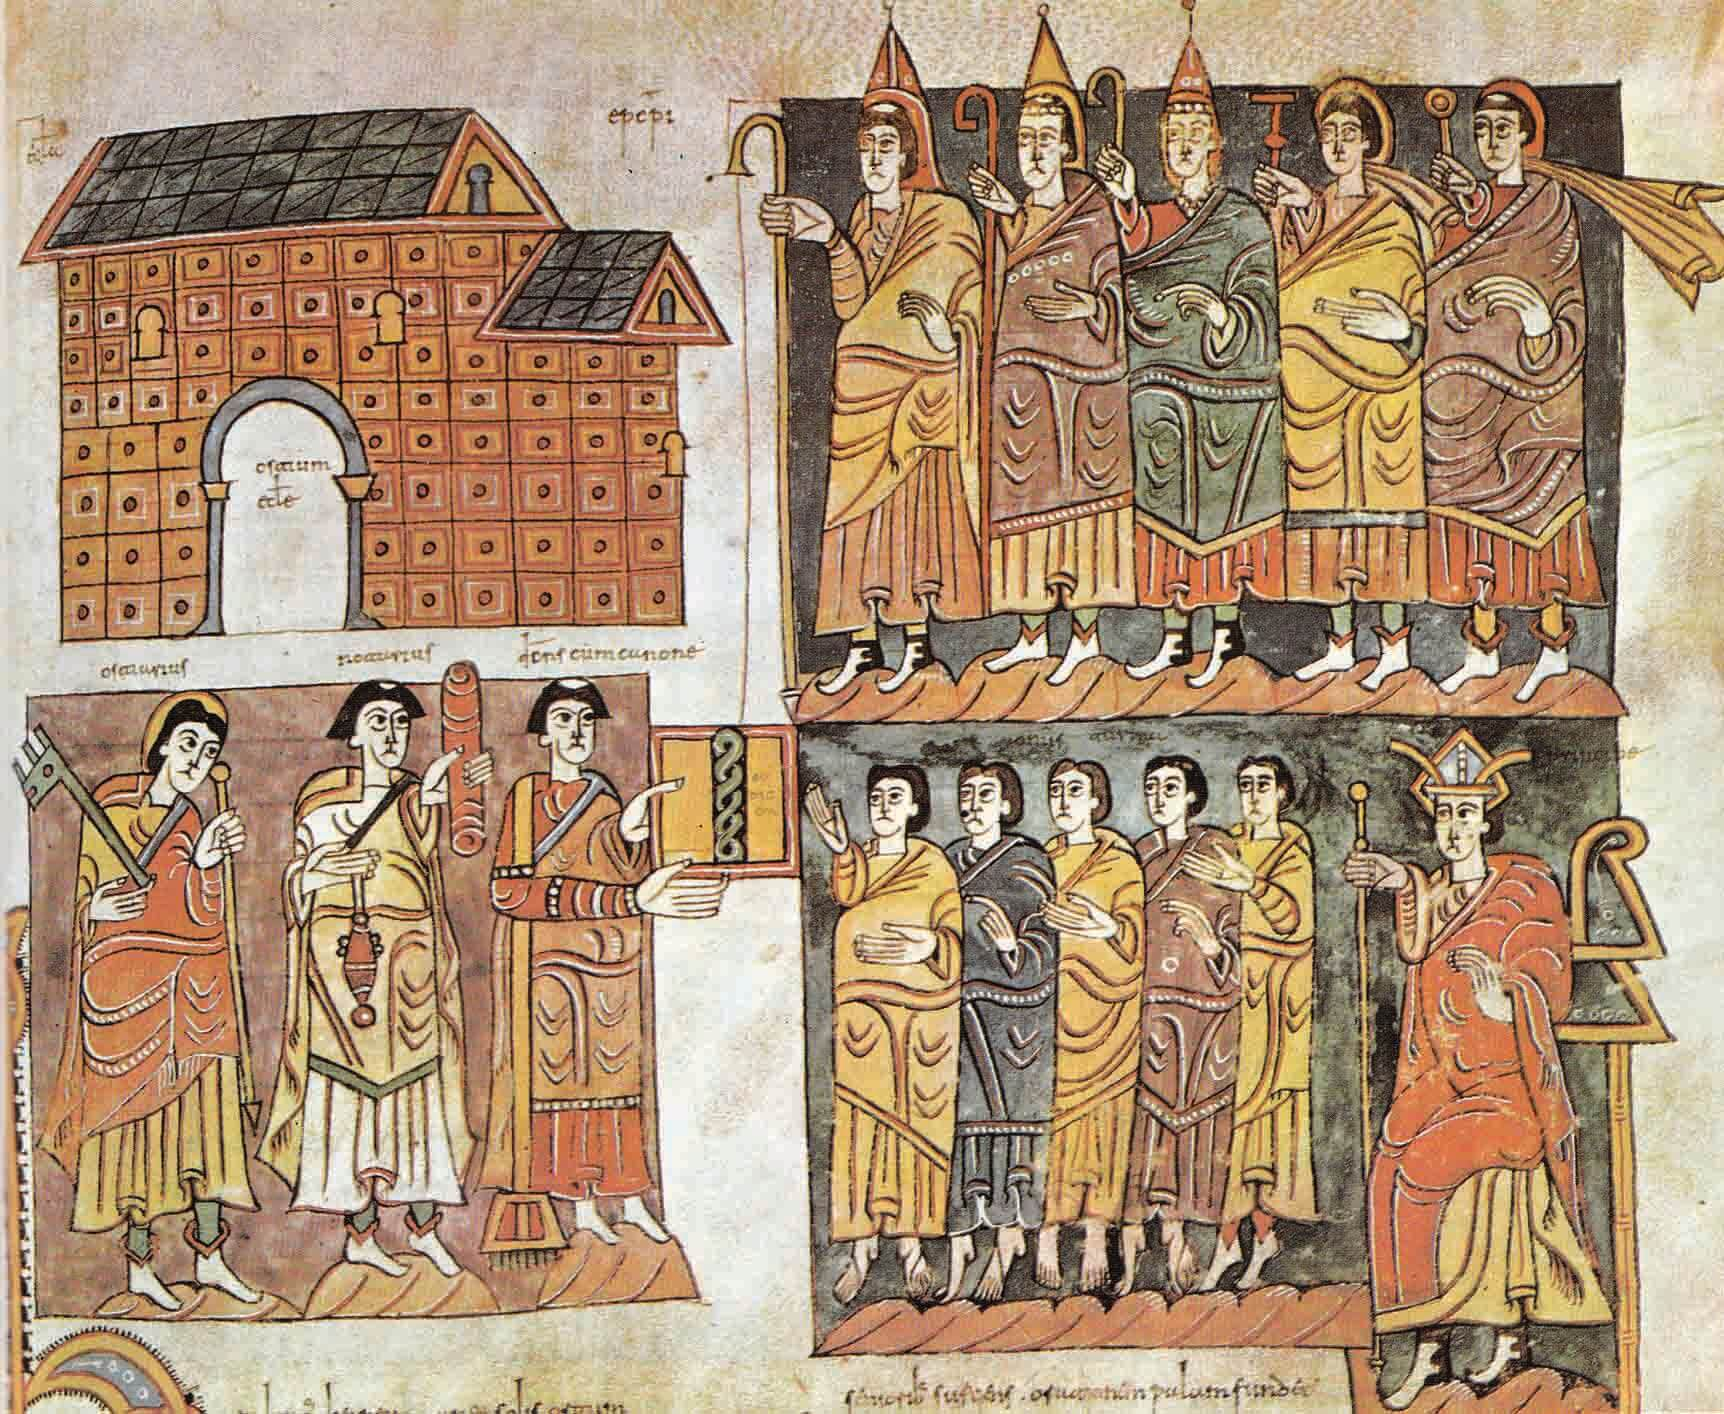 The Cortes was a pre-democratic assembly in Portugal, Spain, and other countries, its power varying with time and place. Detail from the Codex Vigilanus, a 10th-century collection of manuscripts, showing the Cortes in one of the Spanish kingdoms